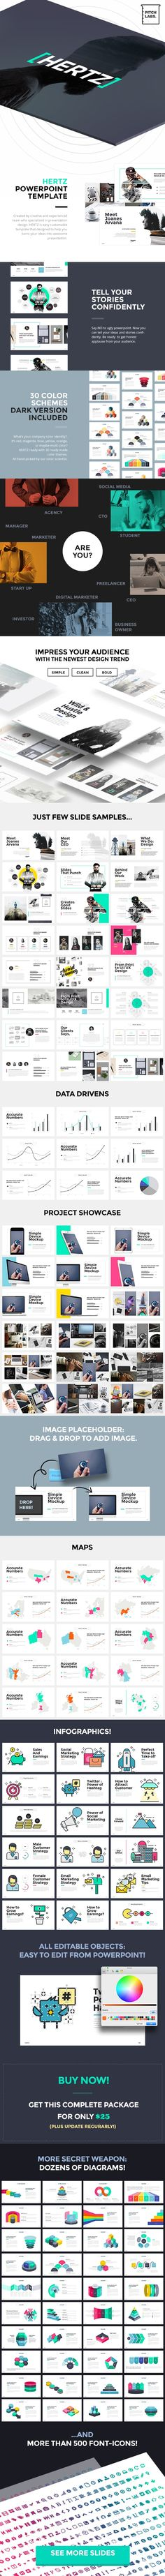 Corporate Powerpoint Presentation Template HttpsGraphicriver